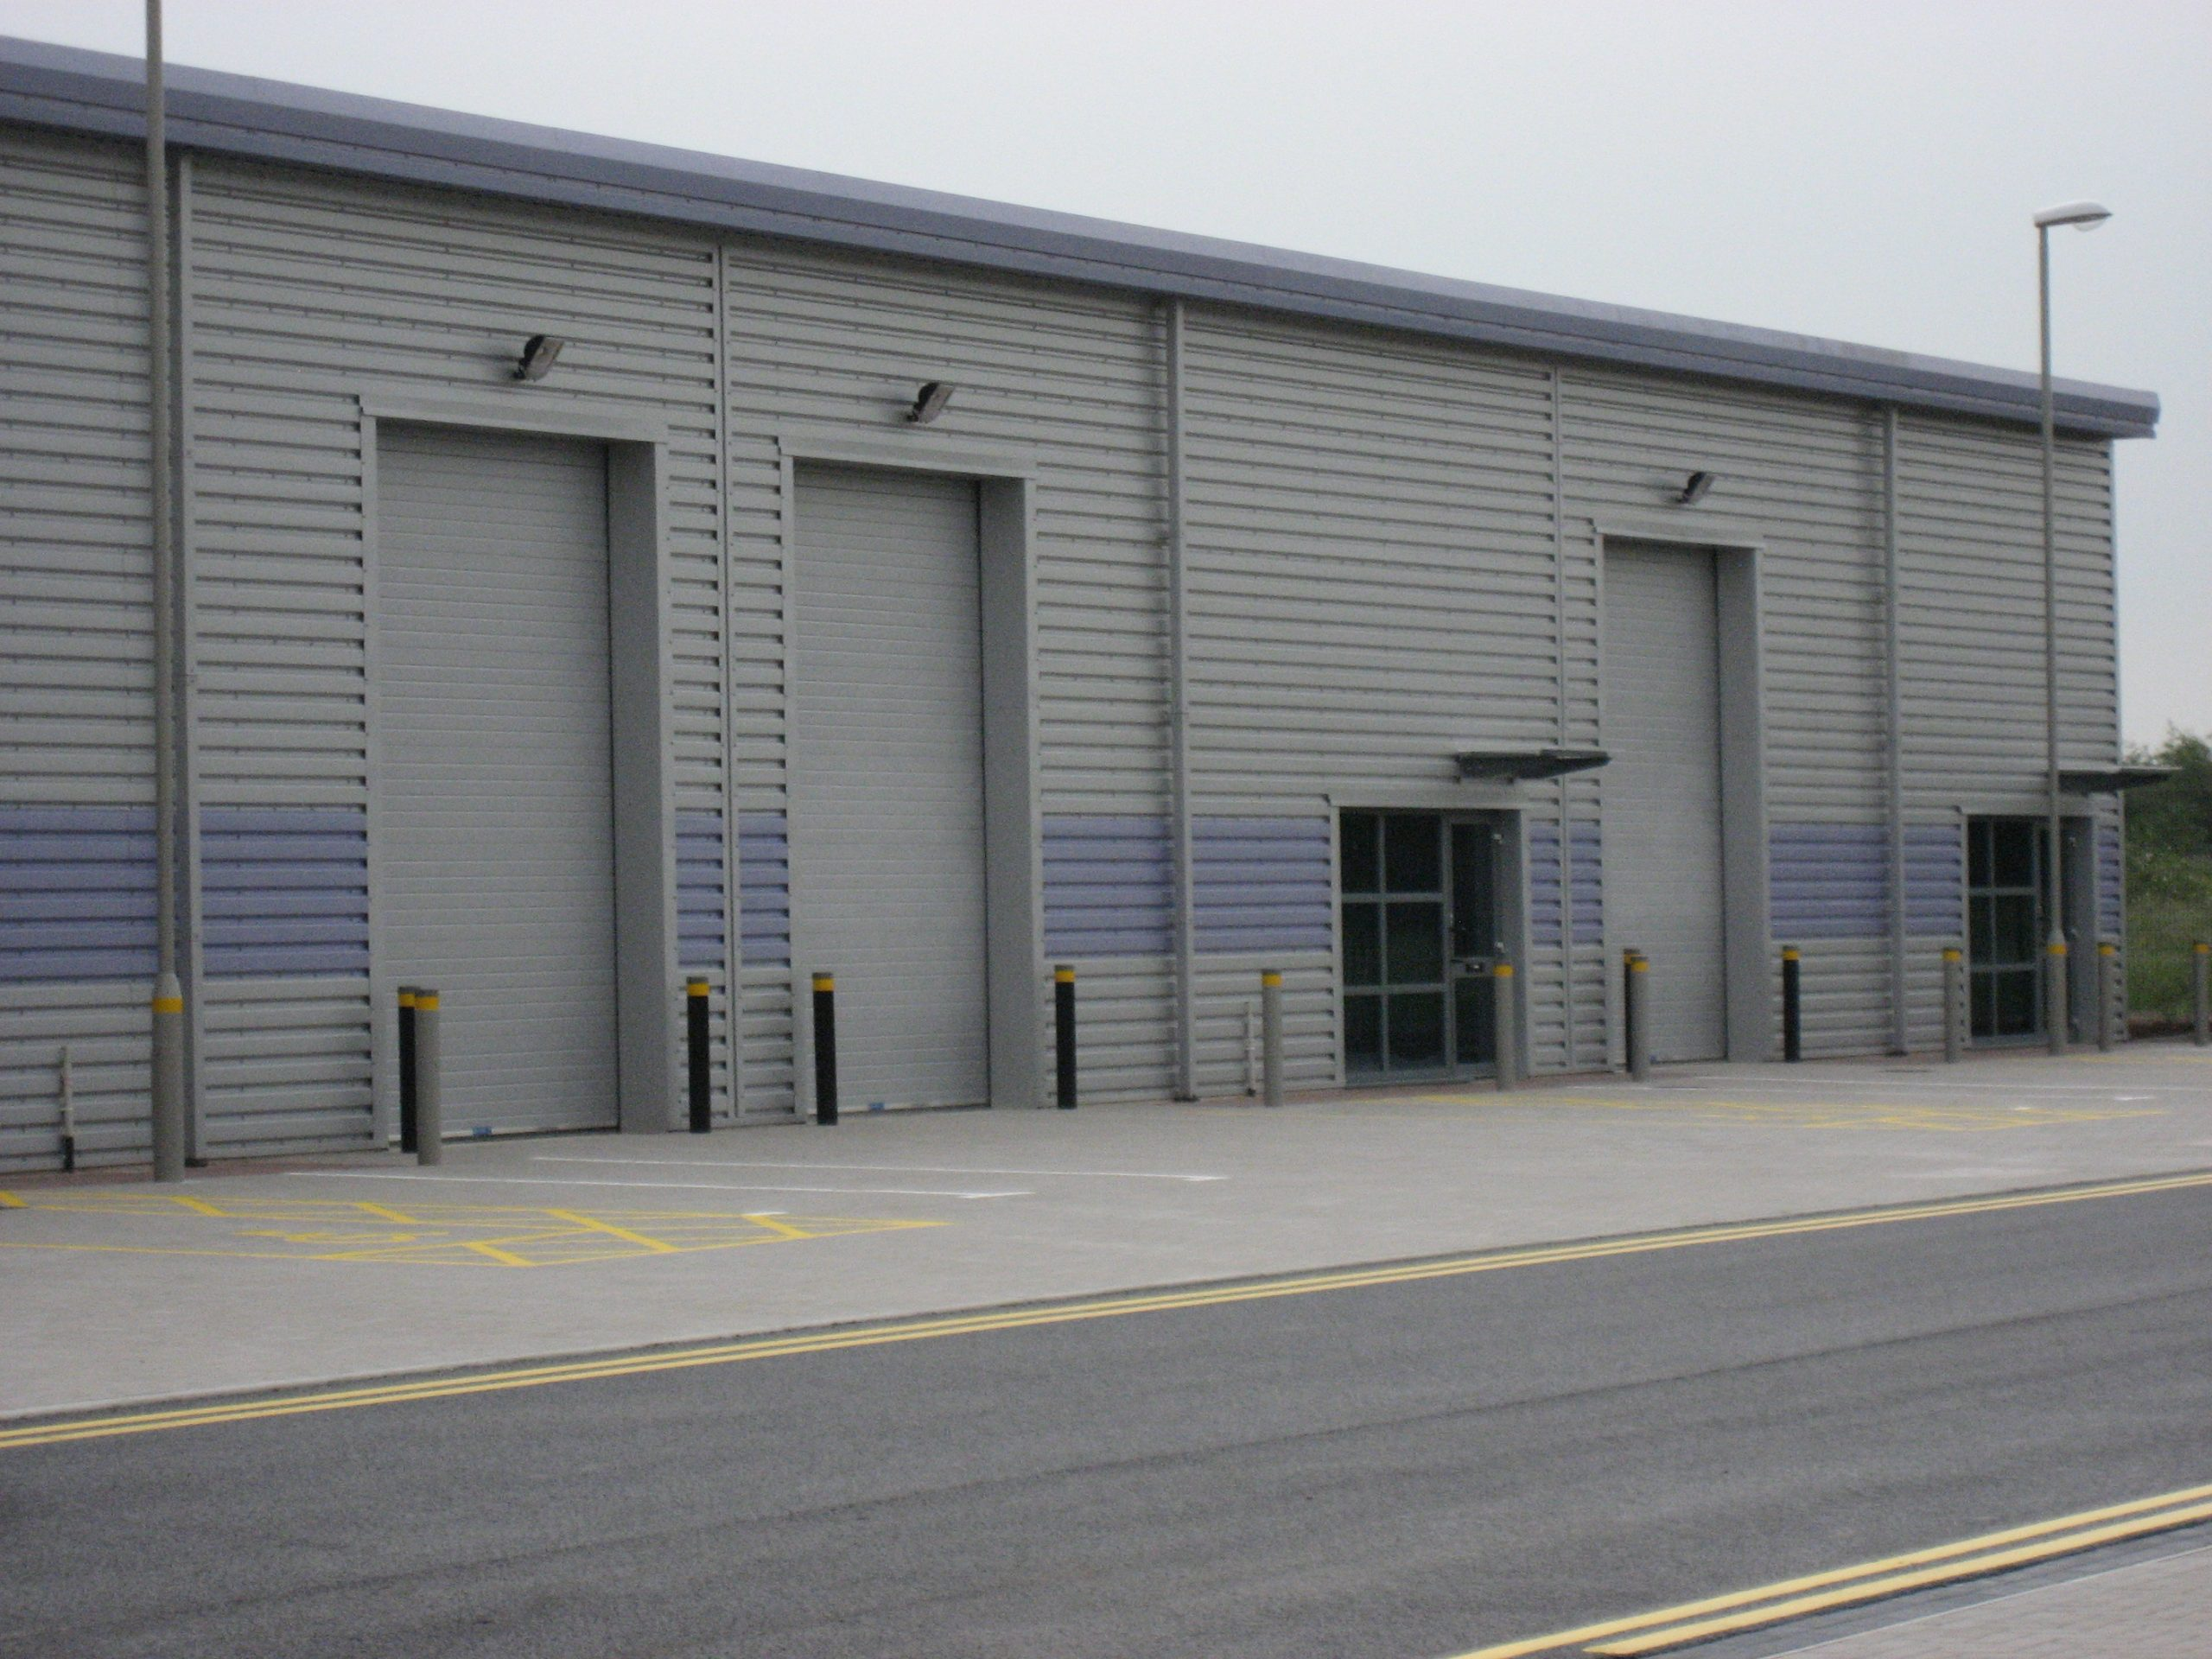 Tilbury Docks - Installation of sectional doors